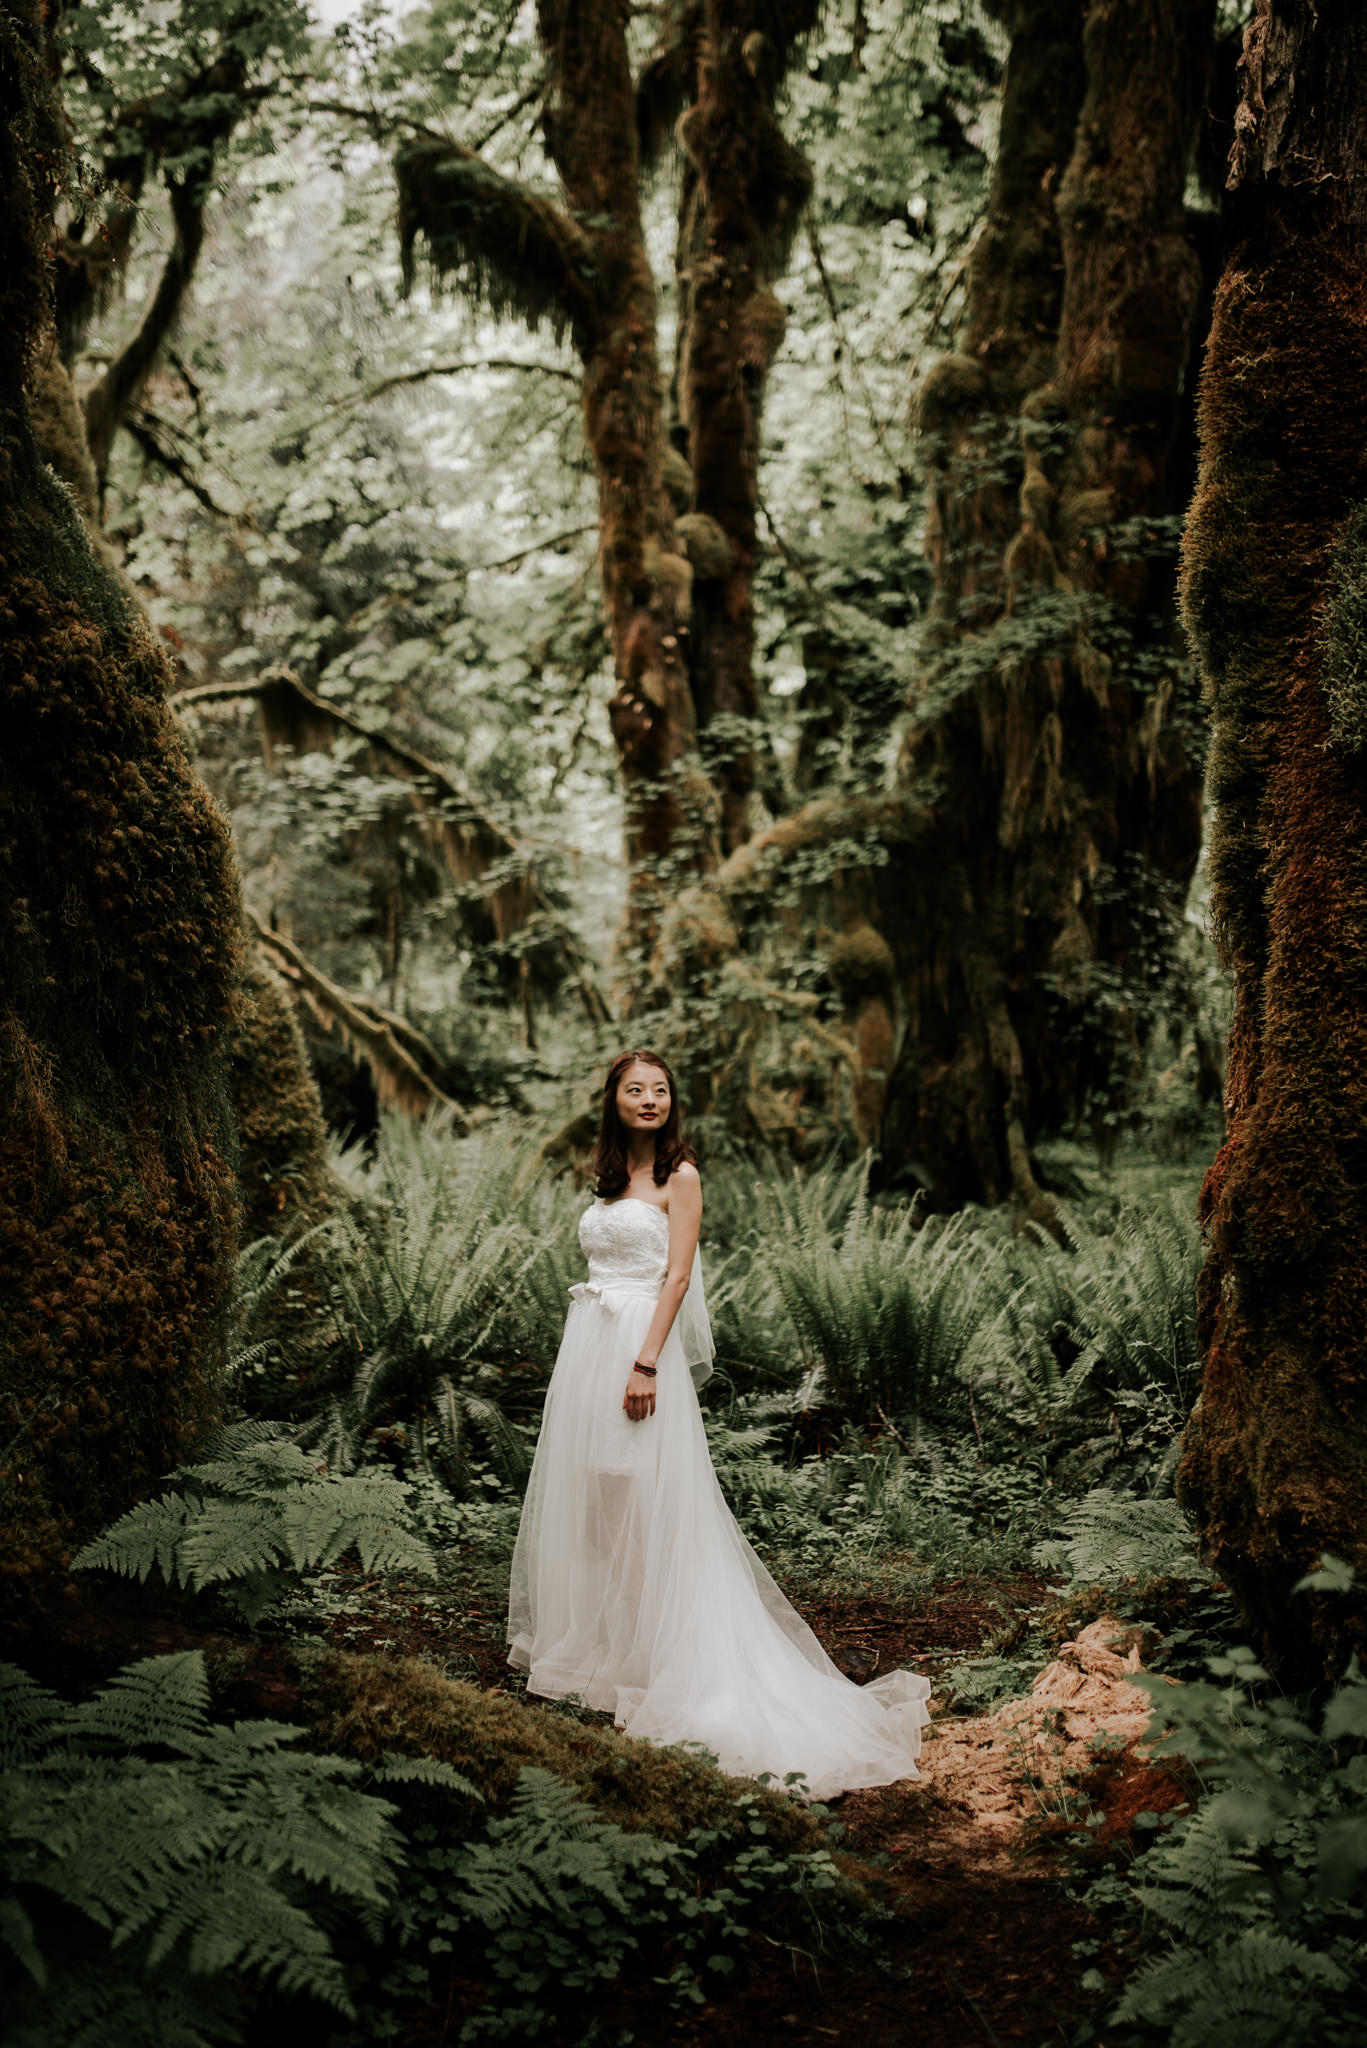 hoh rainforest bridals in olympic national park kristen